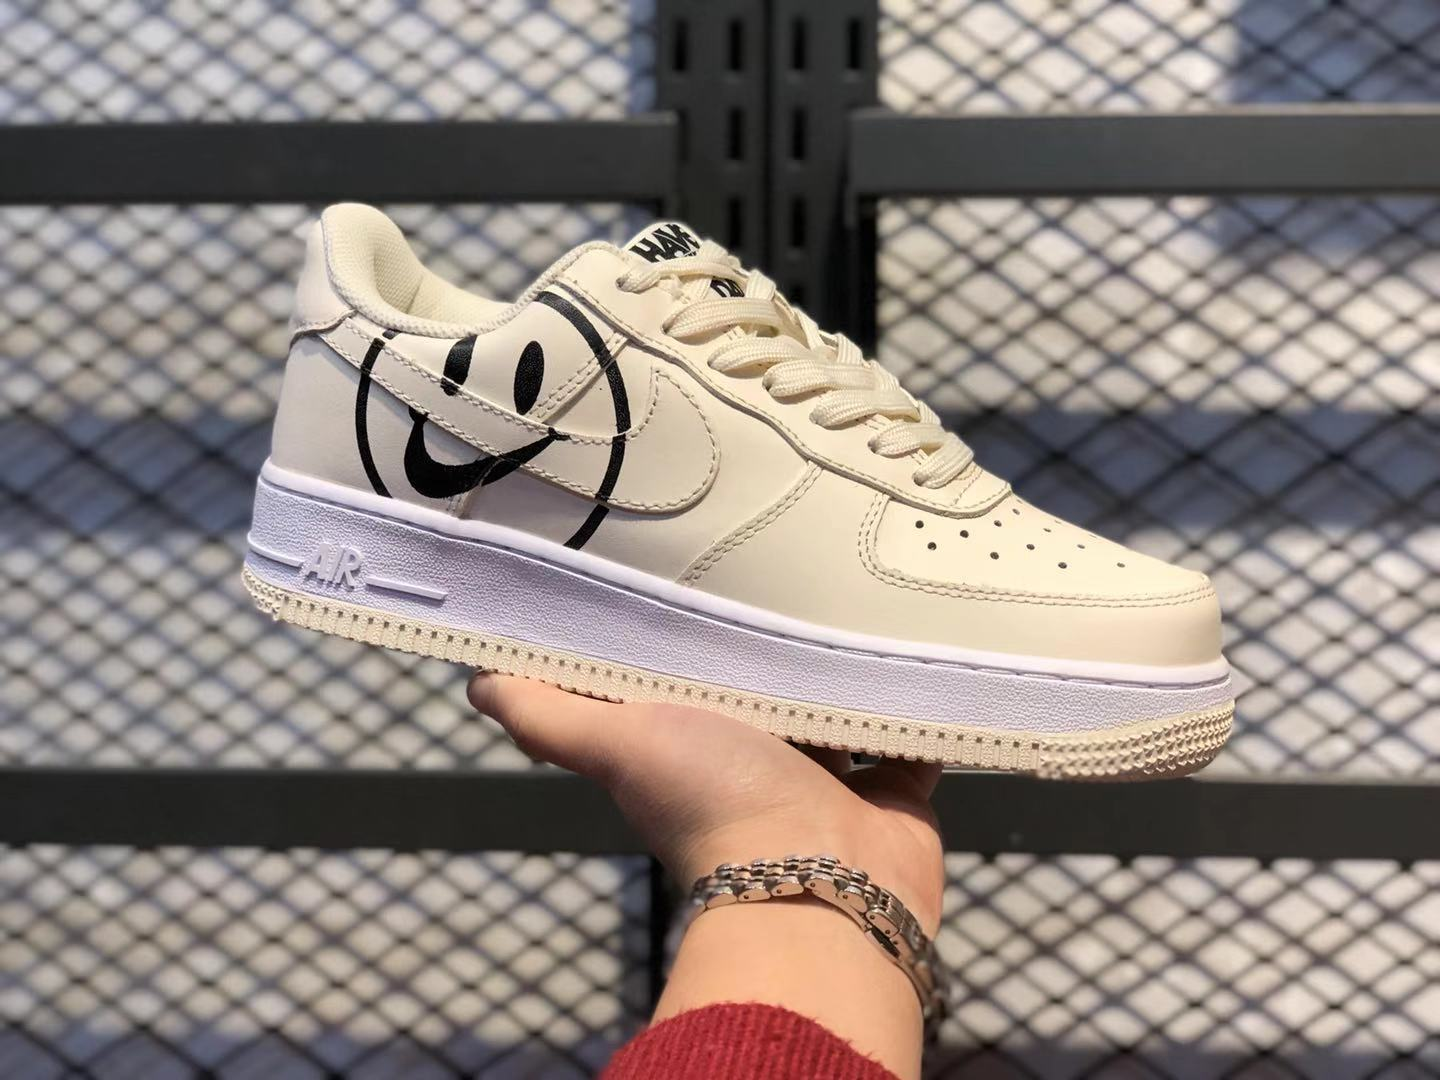 """Best Sell Nike Air Force 1 GS """"Have a Nike Day"""" Beige/Black Lifestyle Shoes"""